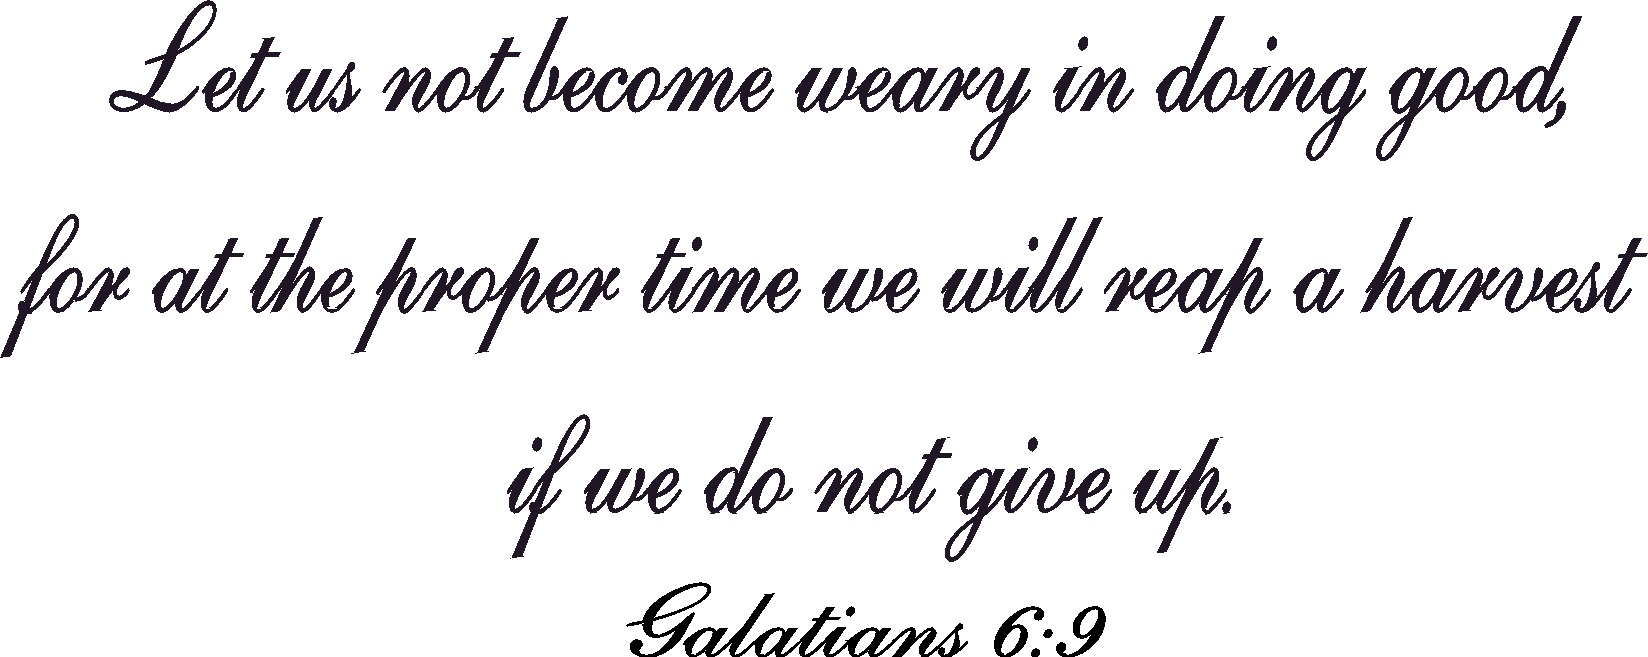 Galatians 6:9 Christian Wall Art